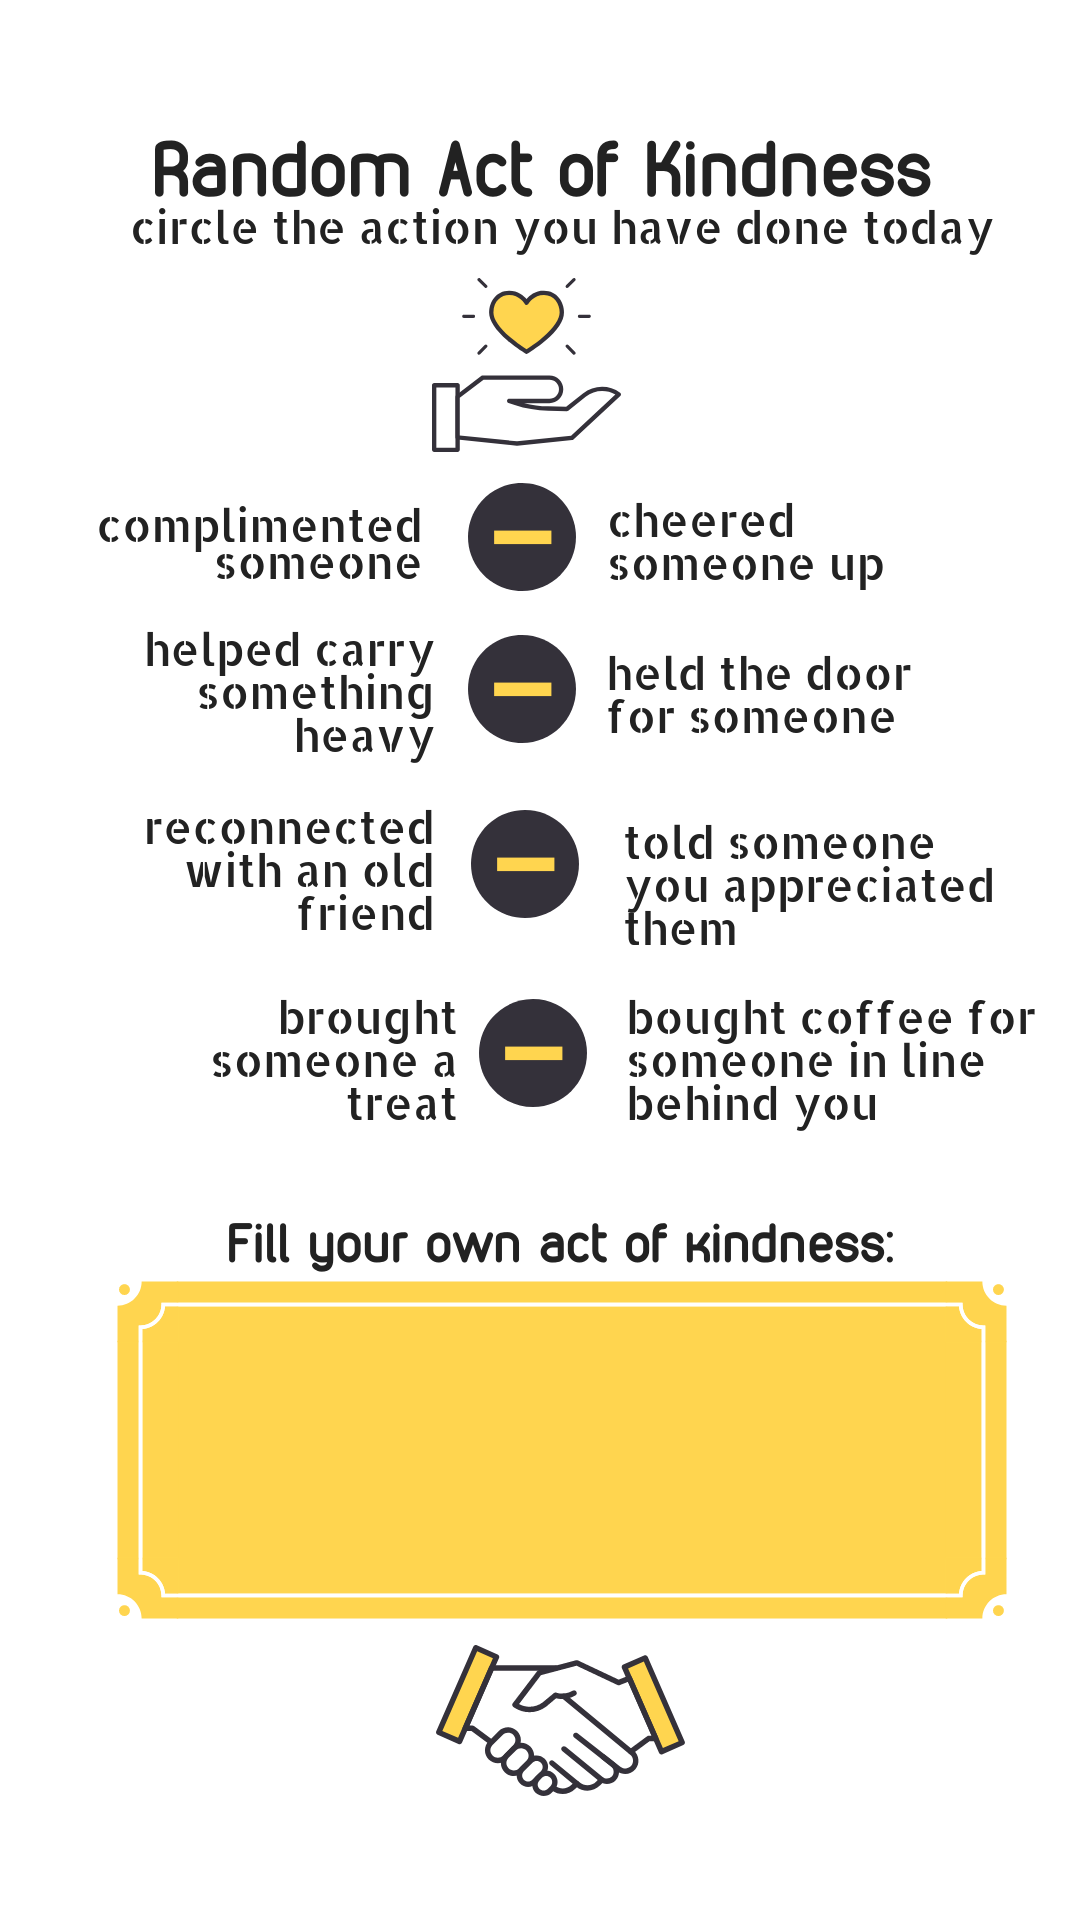 Original template for the Random Act of Kindness #UWRAK contest.